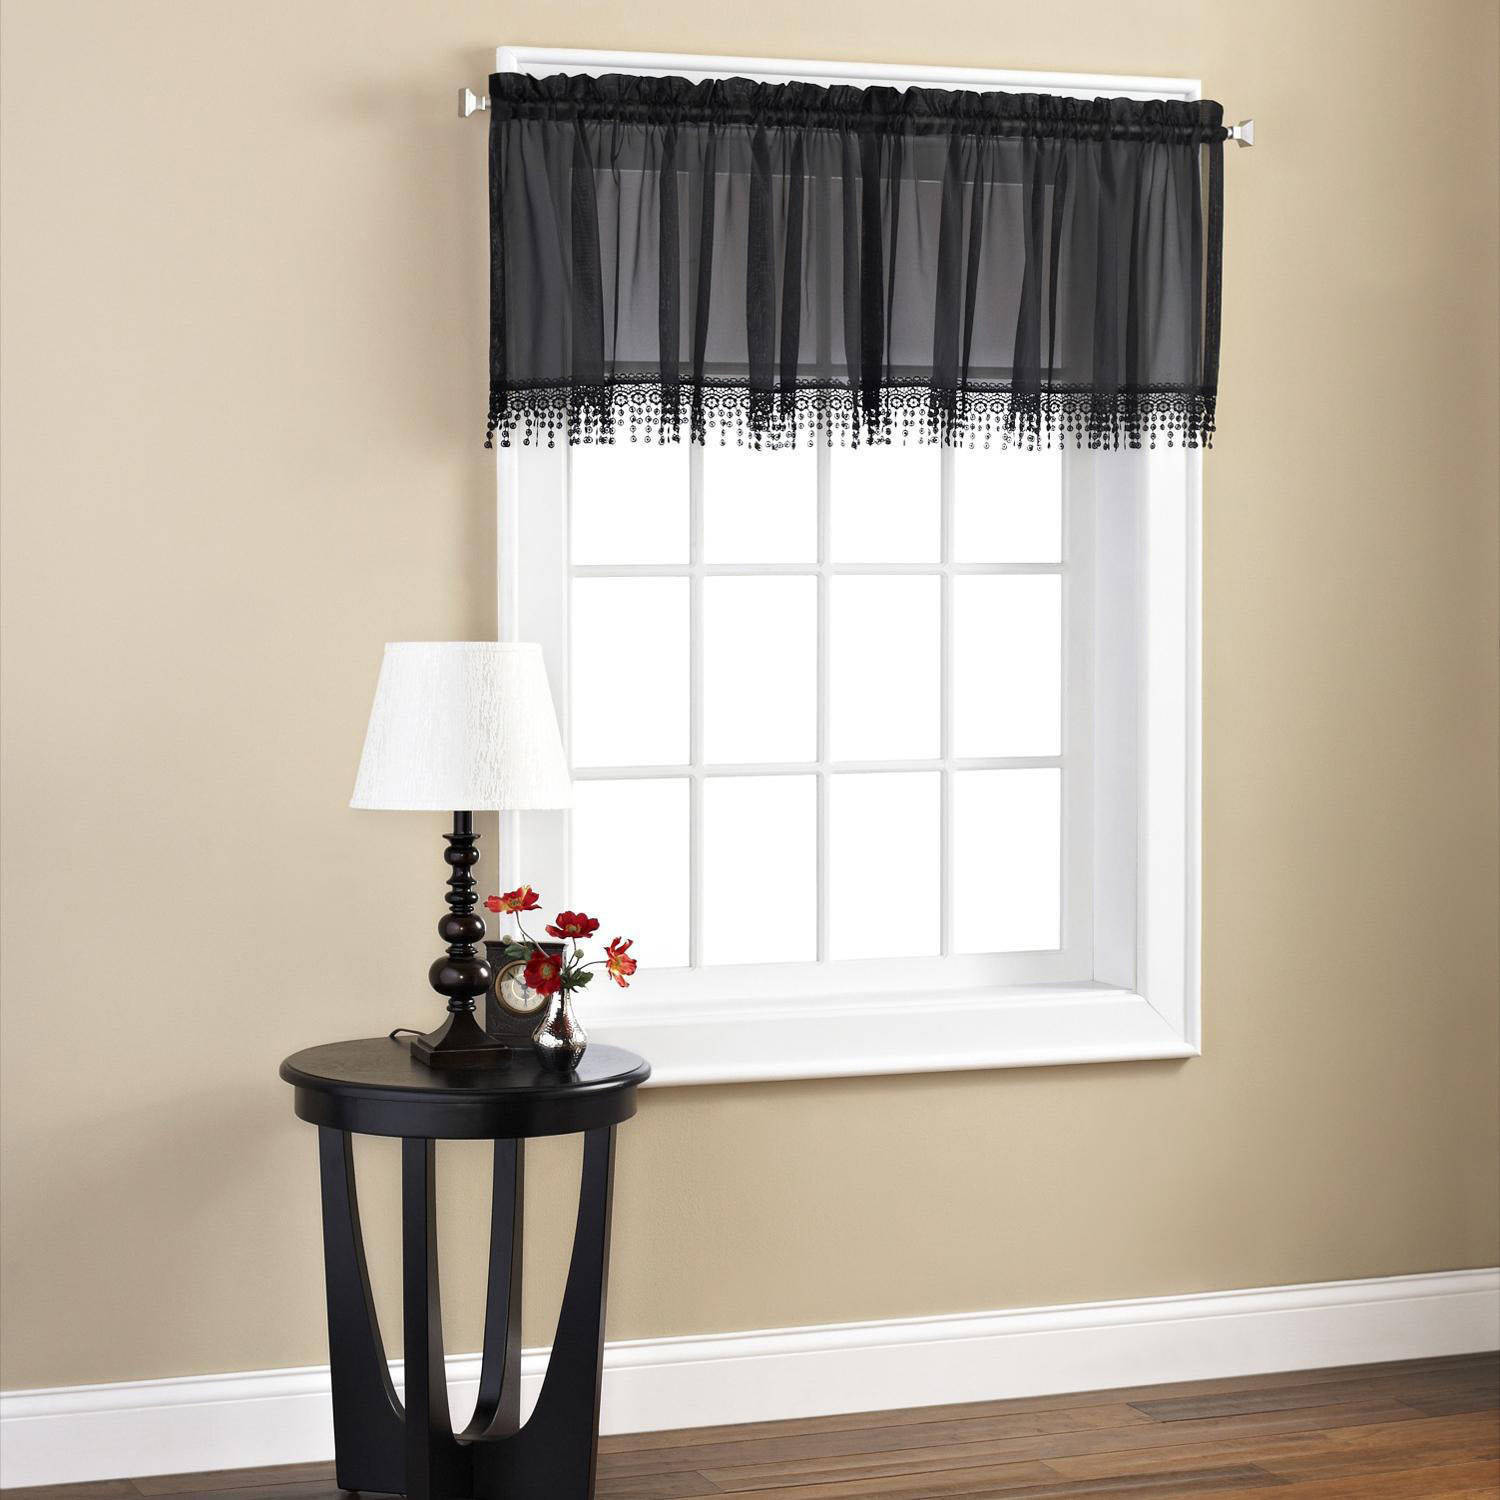 valances g valance mini also high with along living for bedroom windows room ideas